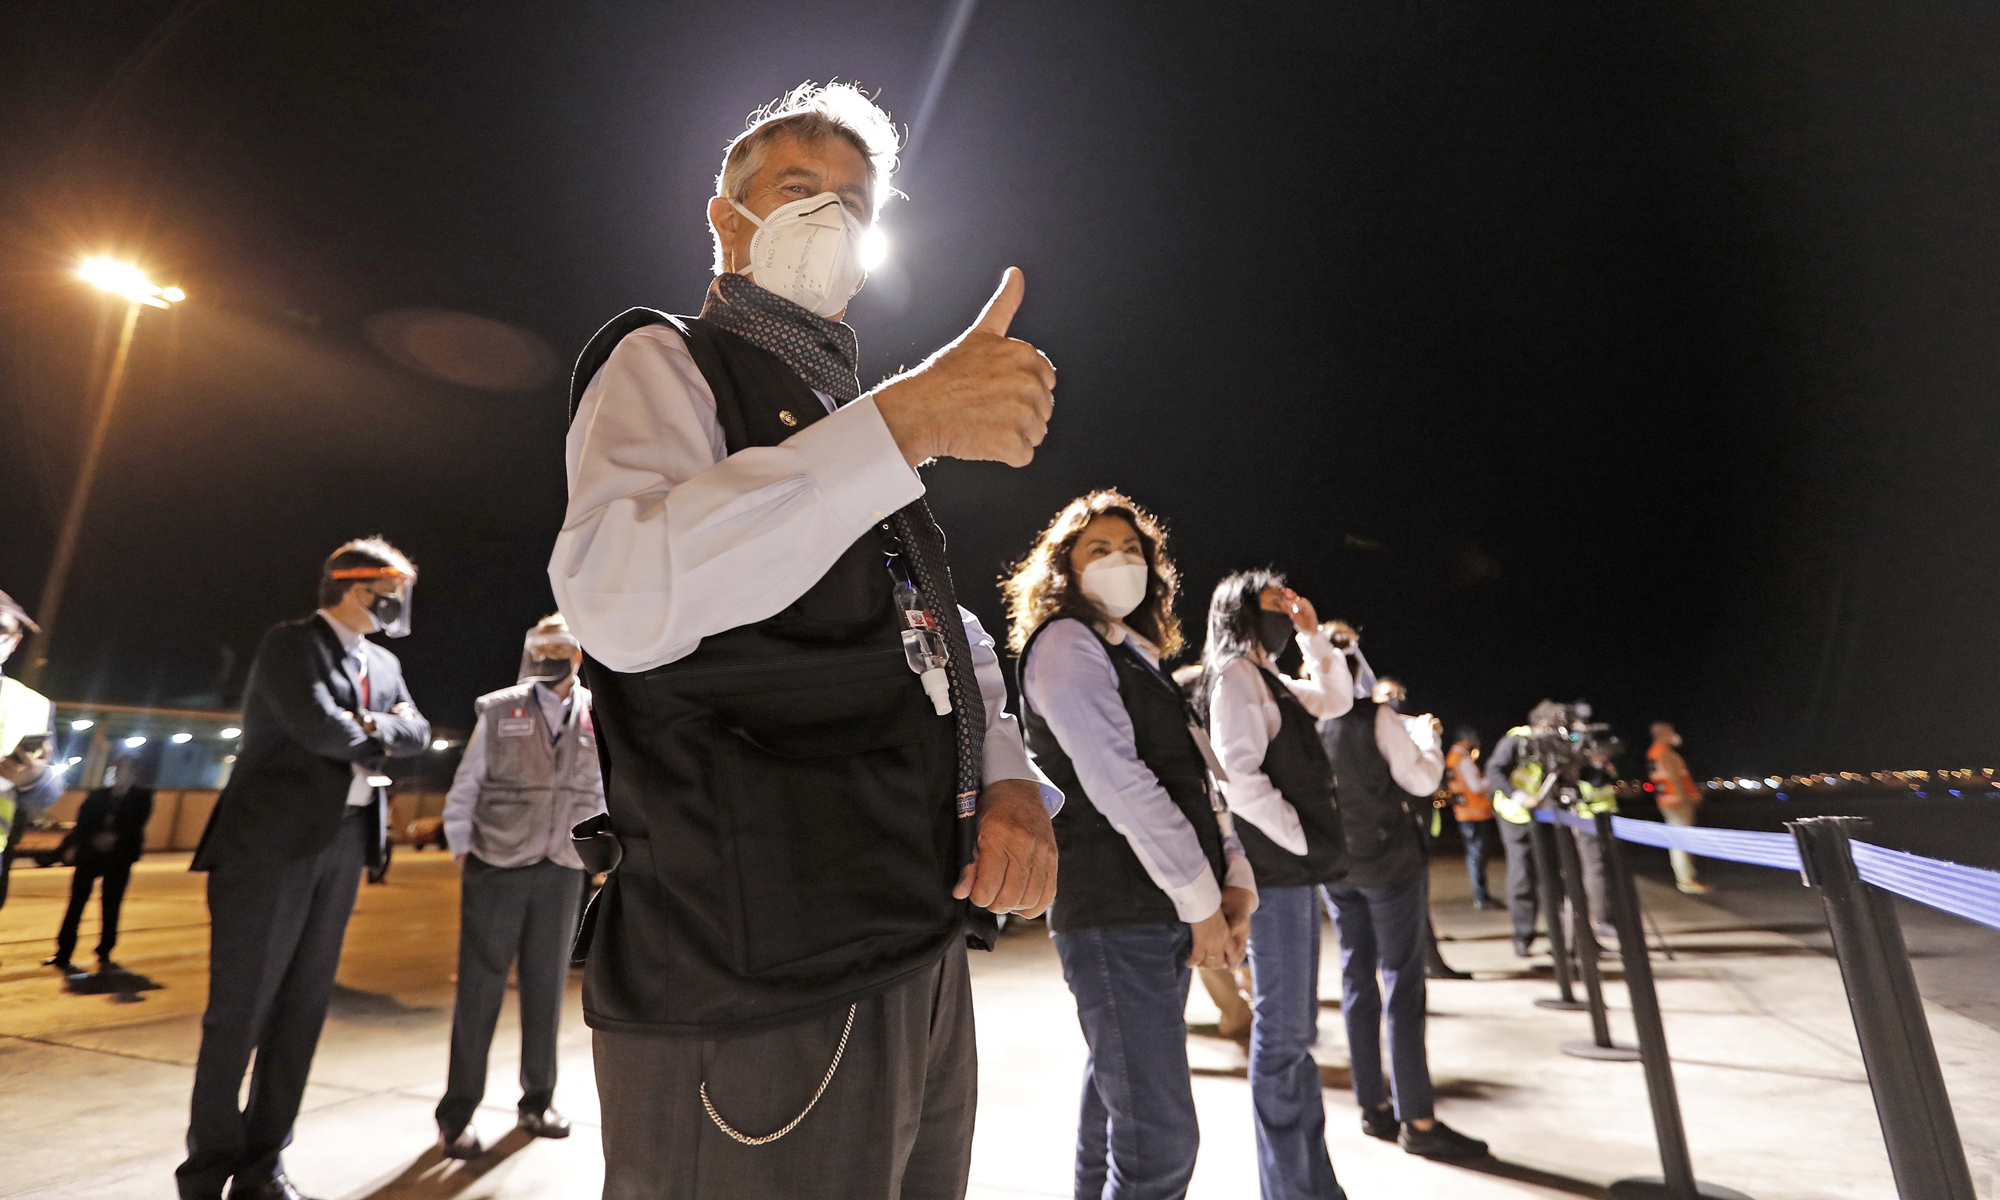 A handout photo provided by the Peruvian presidency shows President Francisco Sagasti (front) reacting during the arrival of the Air France plane with the first batch of COVID-19 vaccine at the Jorge Chavez airport in Lima, Peru on Sunday.  Peru received its first 300,000 vaccines amid a critical oxygen shortage due to a spike in COVID-19 cases. Photo: IC